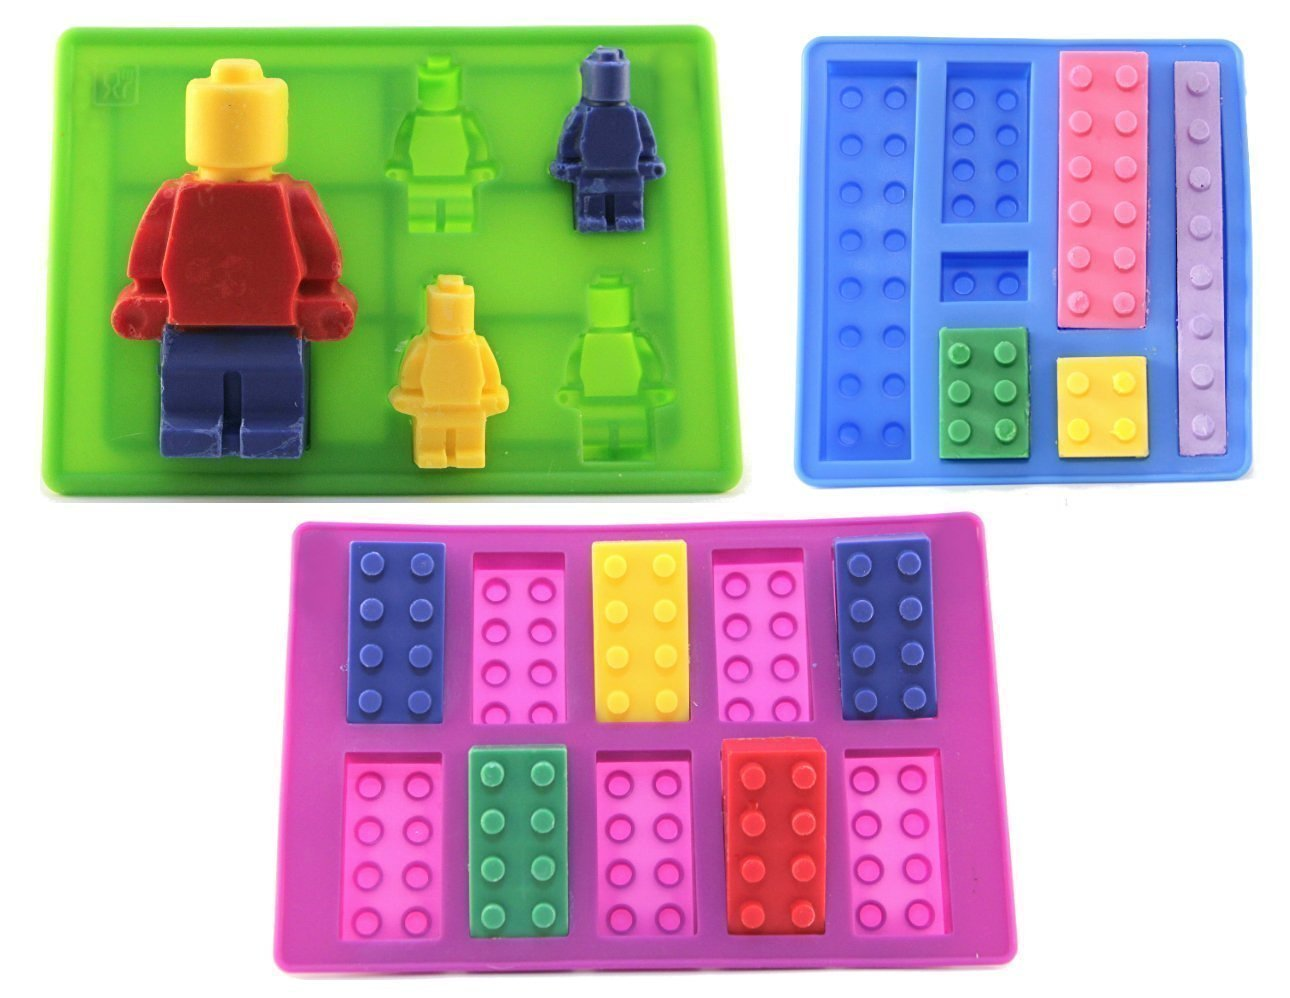 Building Blocks & Minifigure Candy Molds | Perfect for LEGO Themed Birthday Party for Candy Melts, Cupcake Toppers, Ice Cube Trays and Gummies | Figures and Building Blocks for LEGO and LEGO Friends